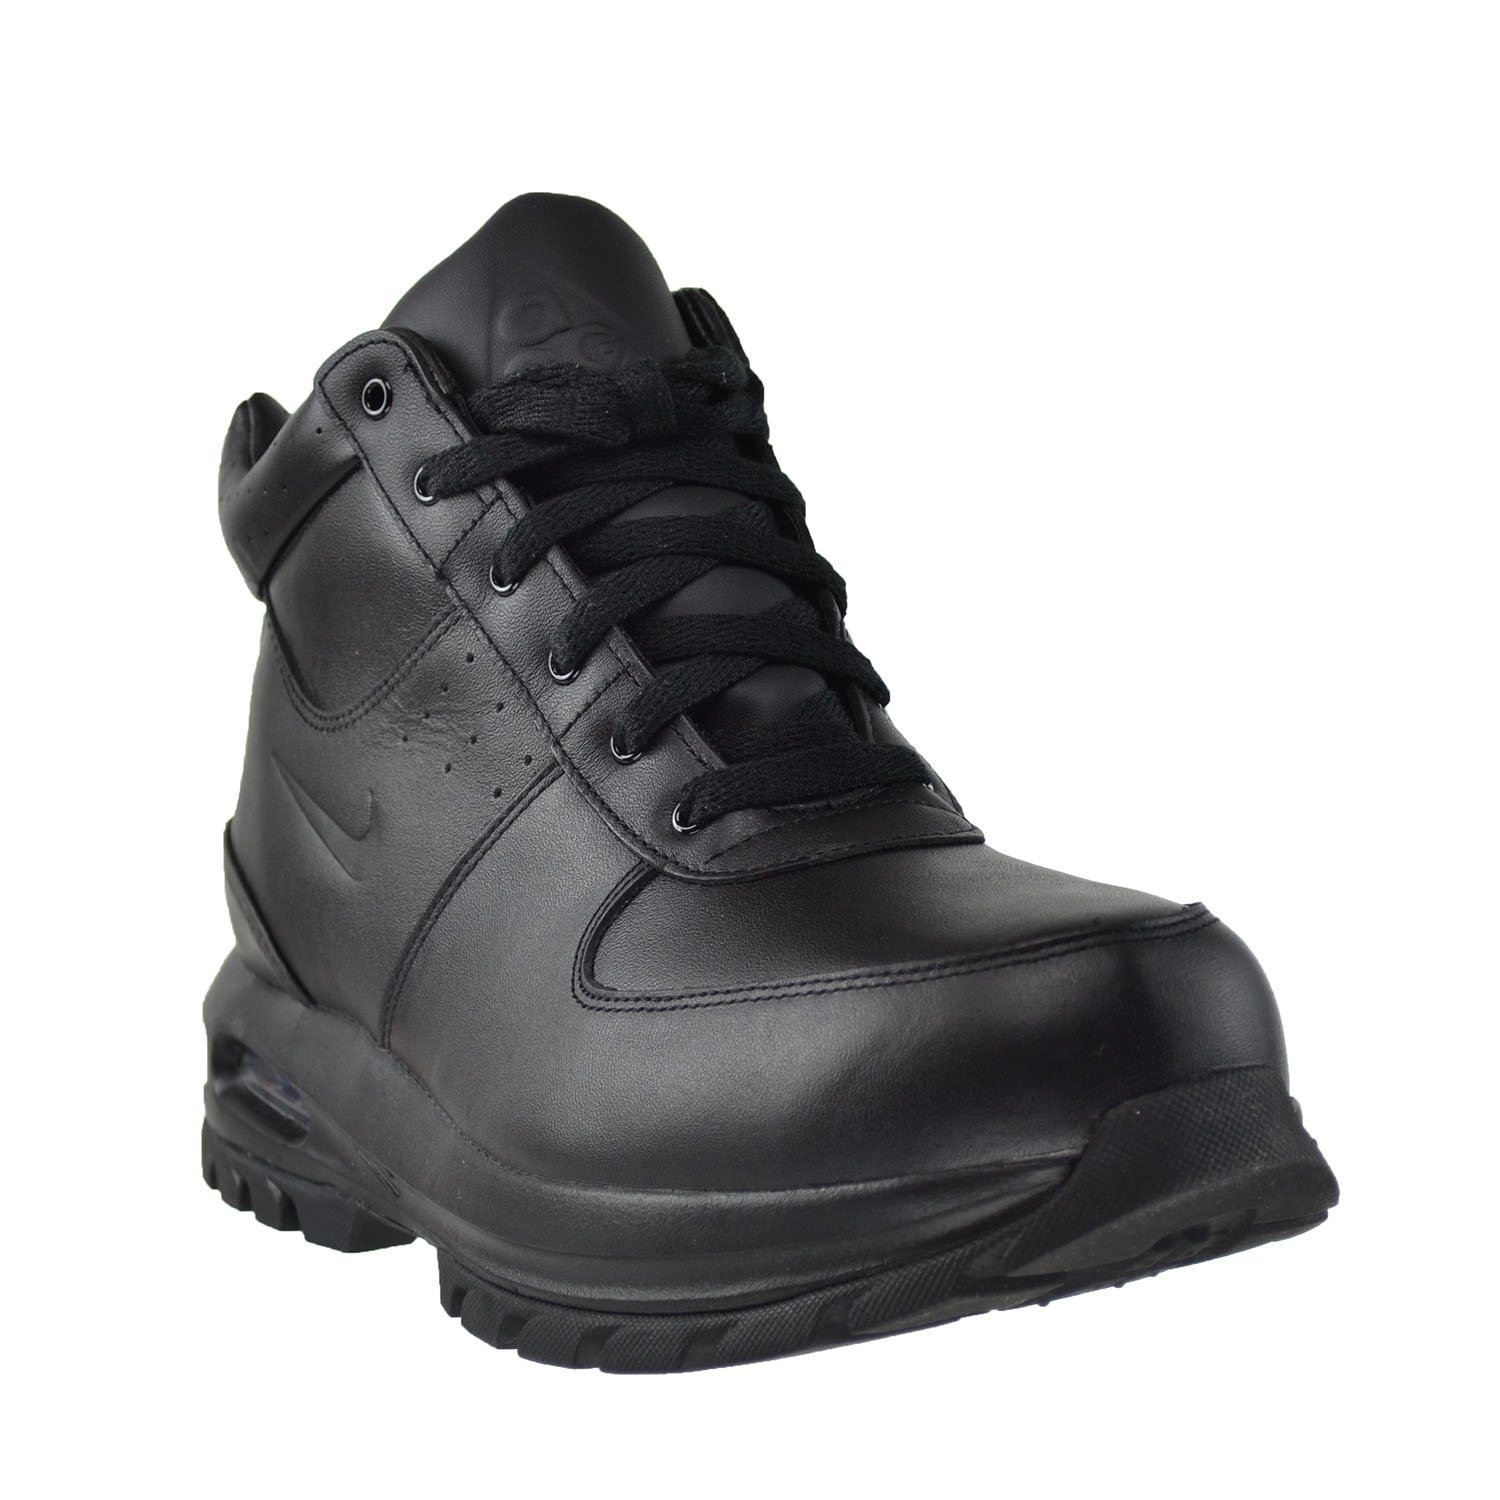 Nike Mens Air Max Goaterra ACG Leather Boots